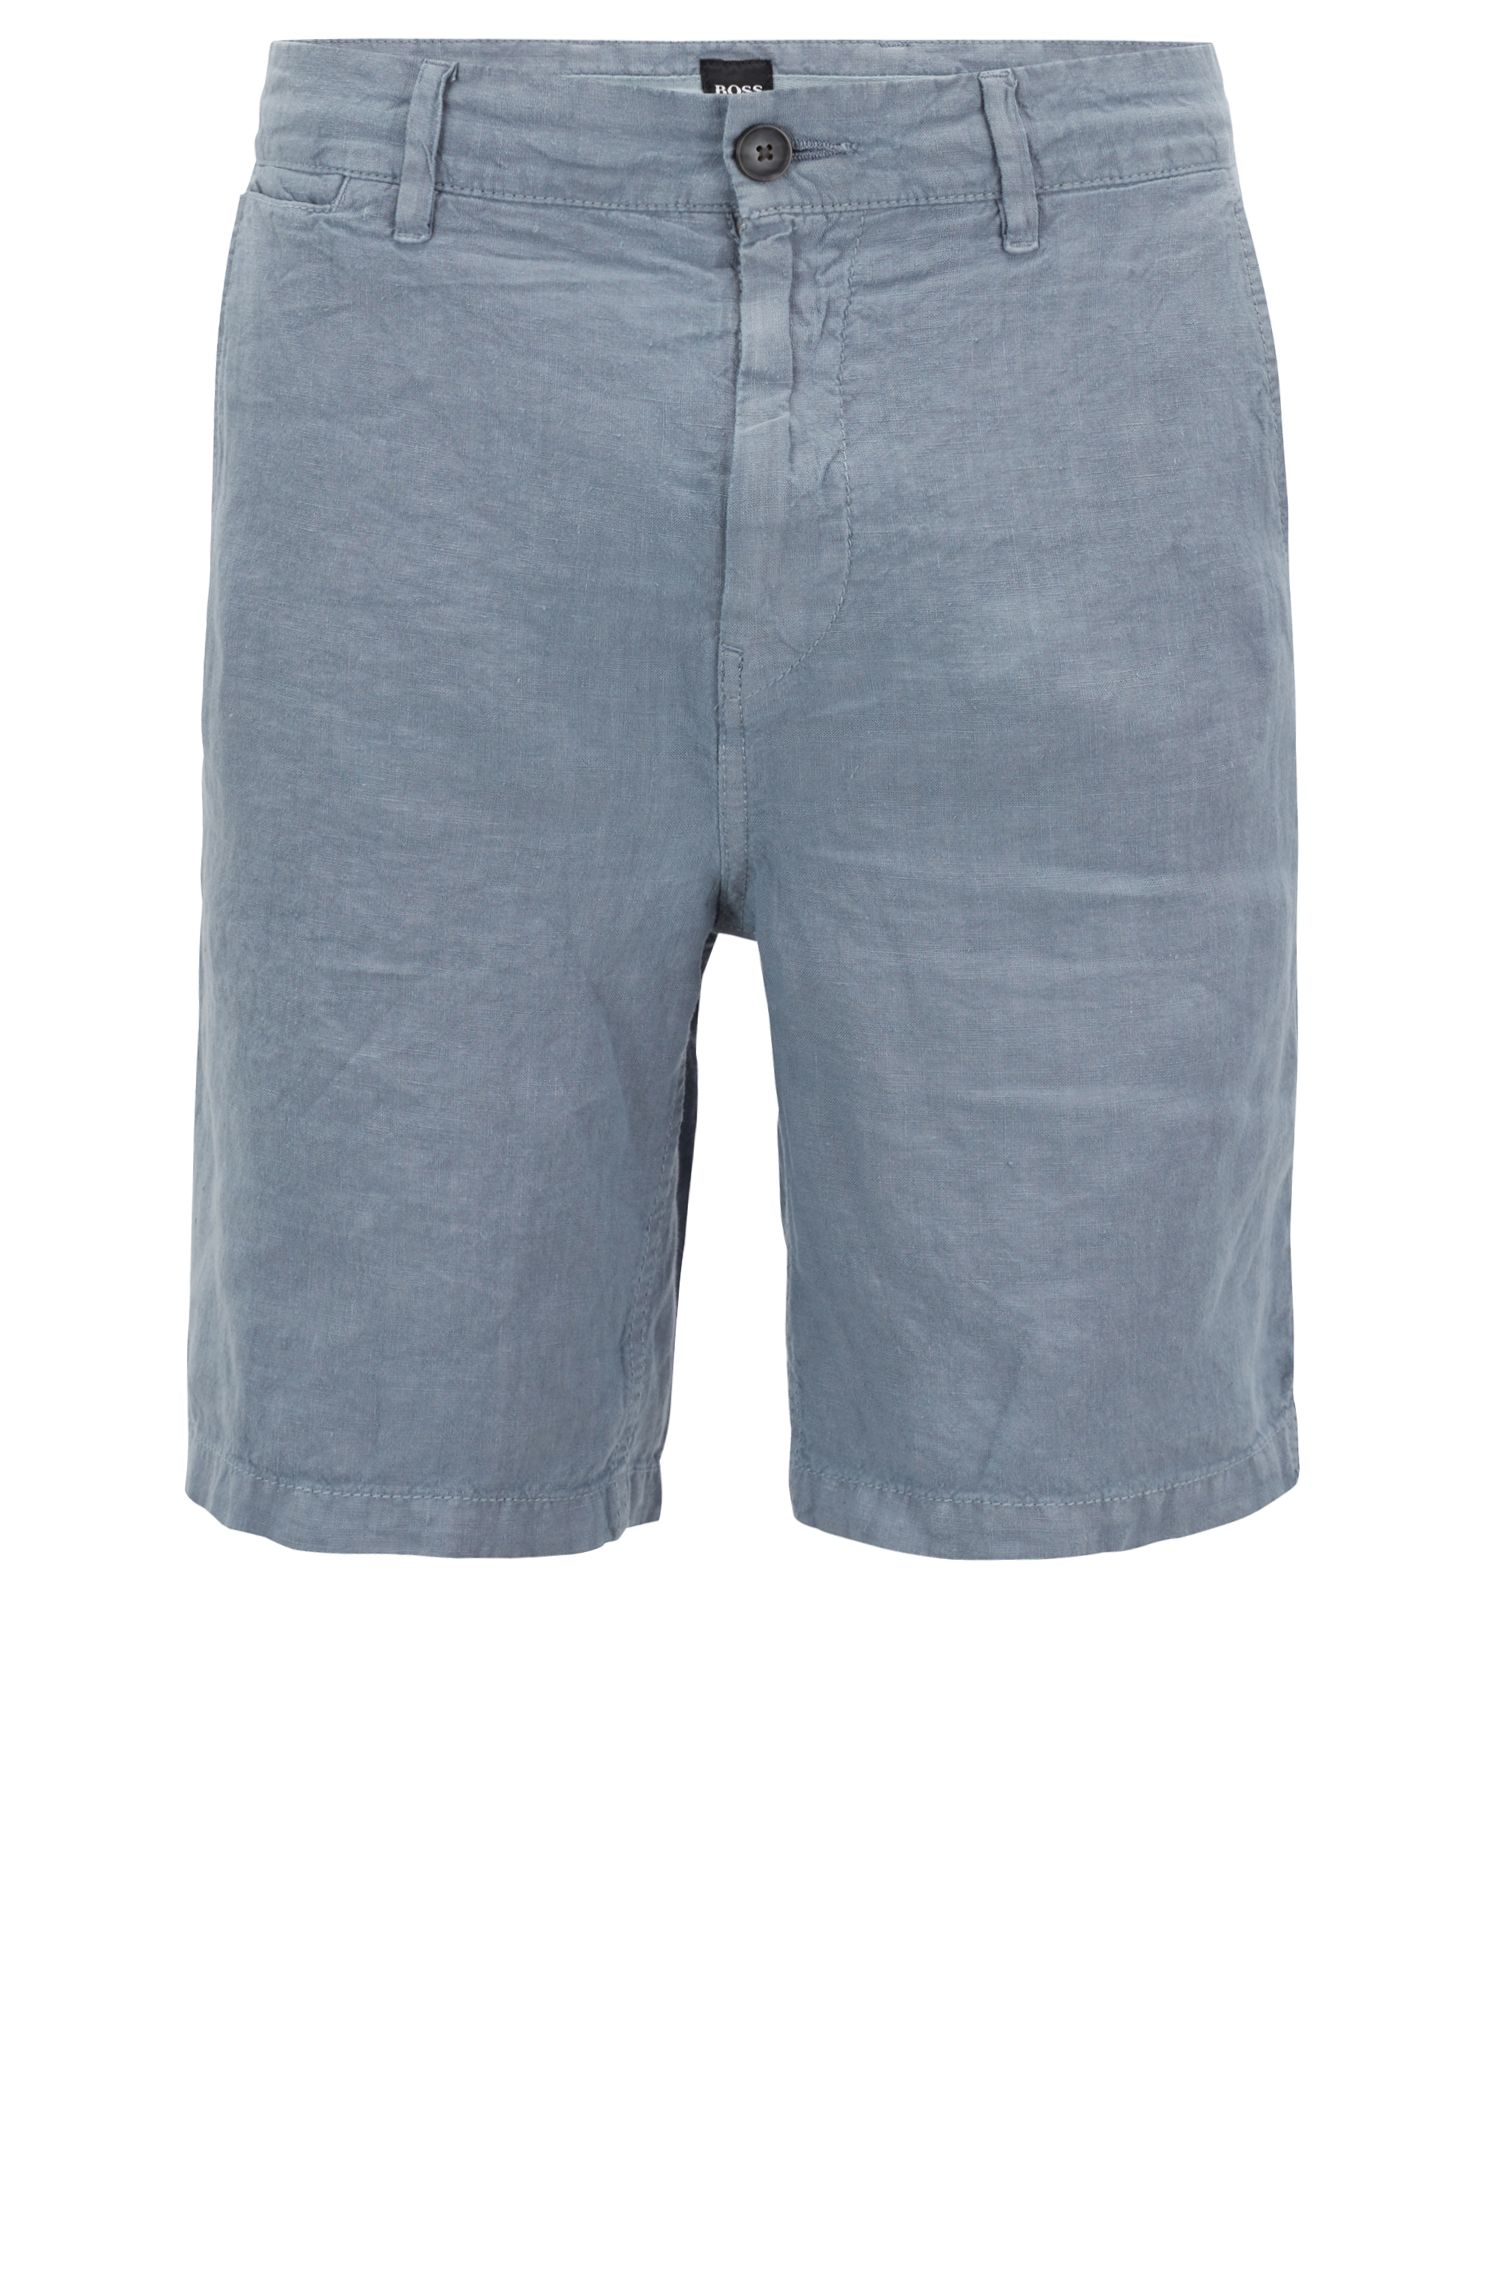 Overdyed linen shorts with inner drawstring